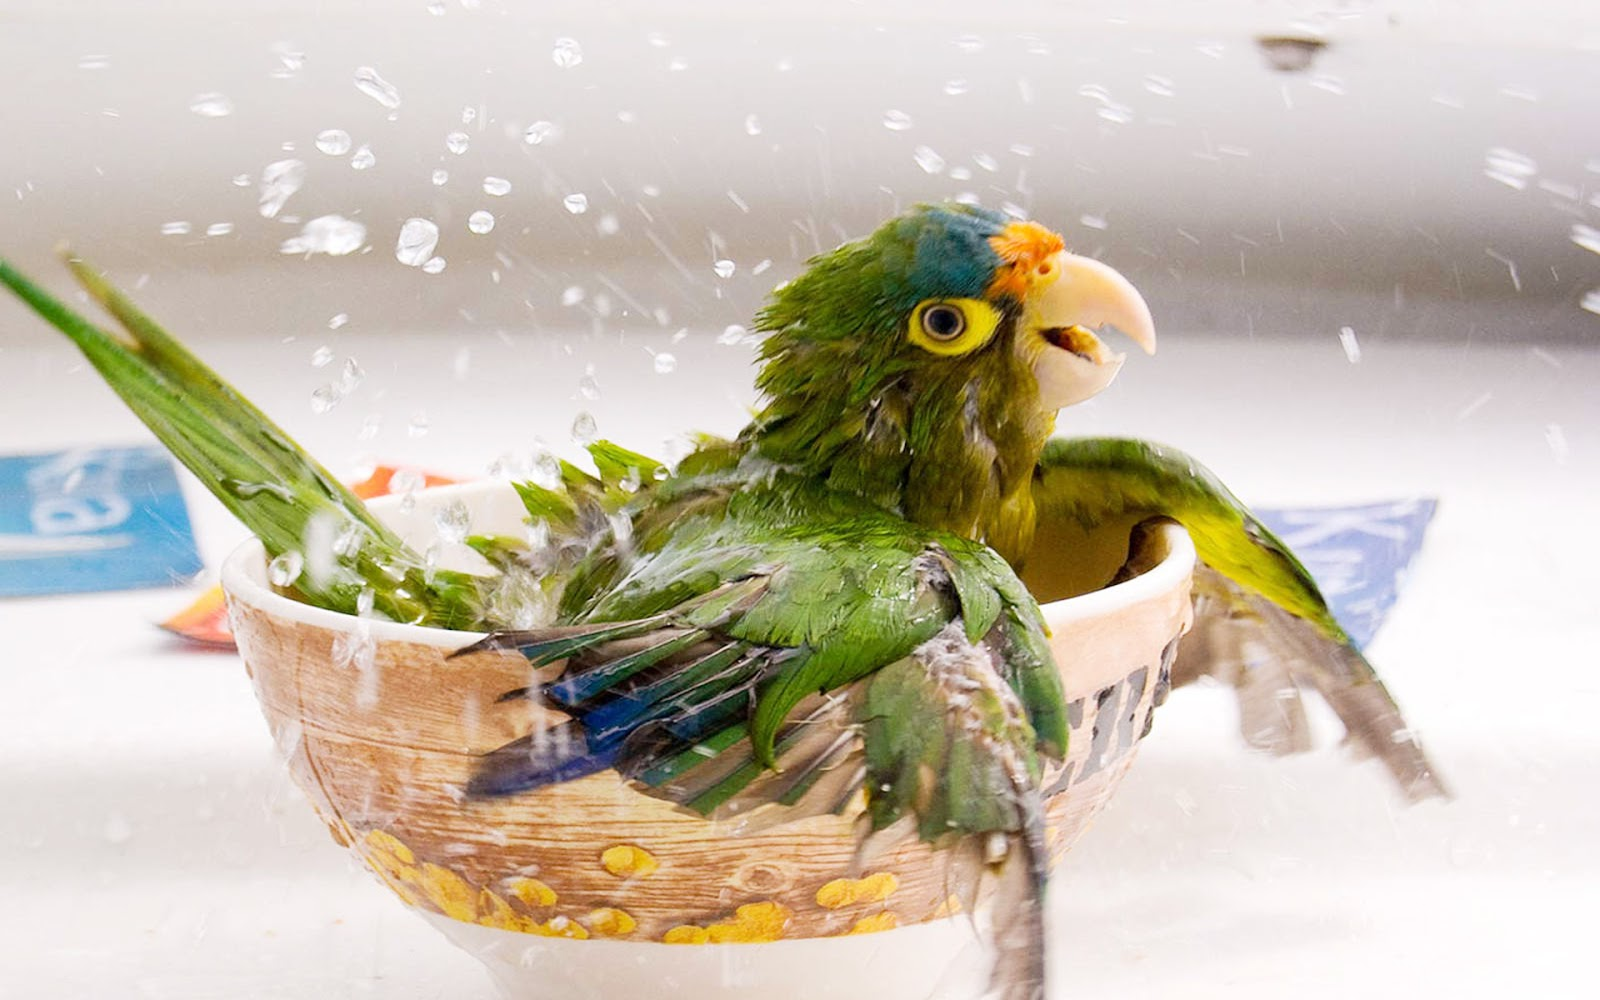 Lovely wallpapers little cute animals wallpapers 2013 - Animal and bird hd wallpaper ...